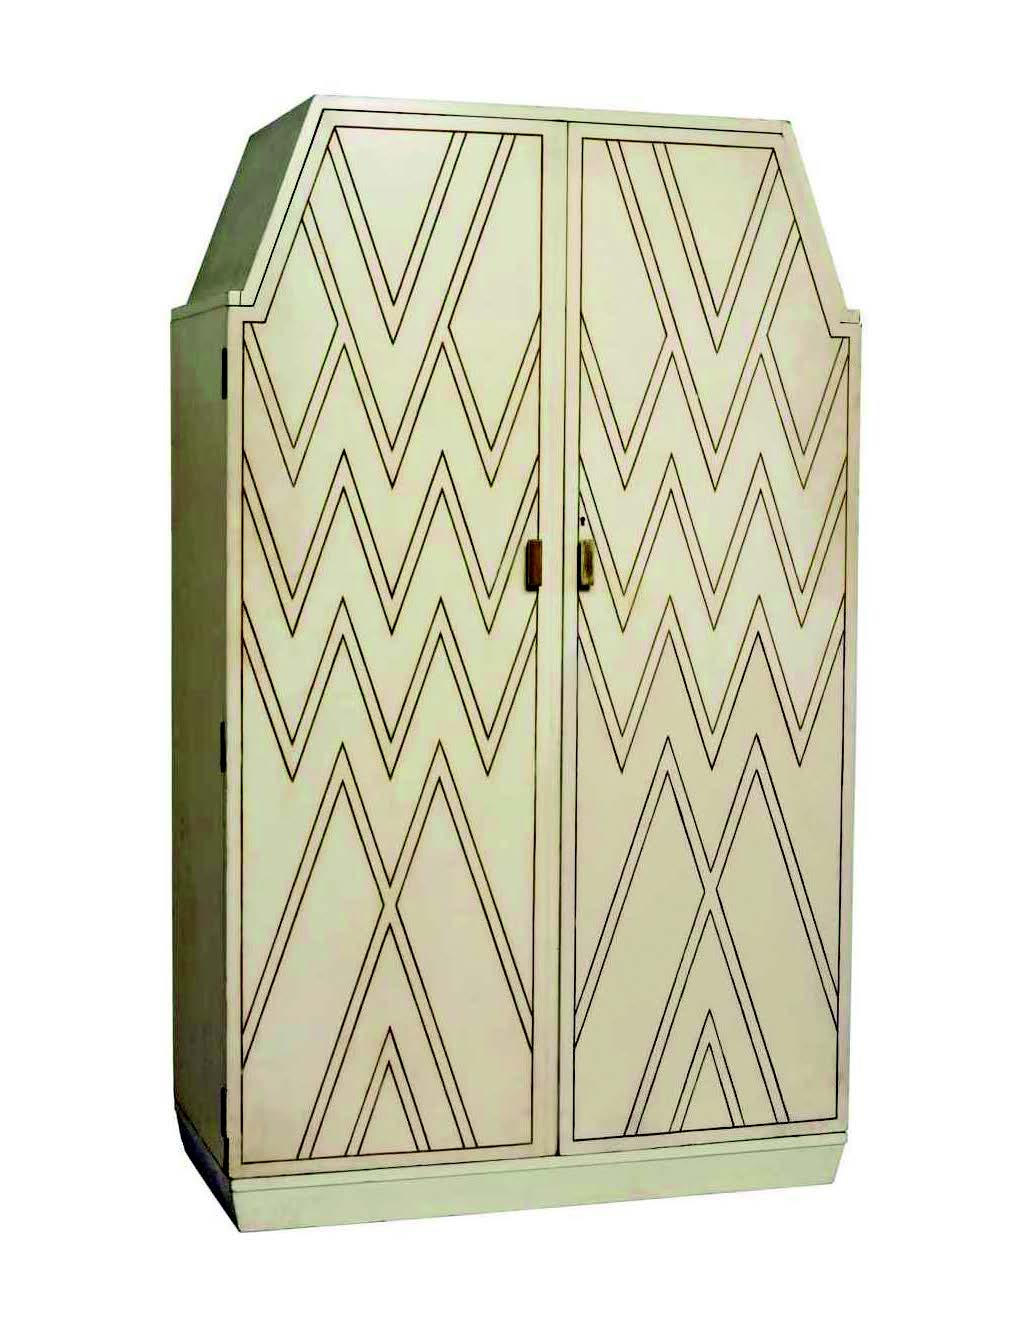 A Dodie wardrobe,designed by AmbroseHeal for his mistress,the author Dodie Smith